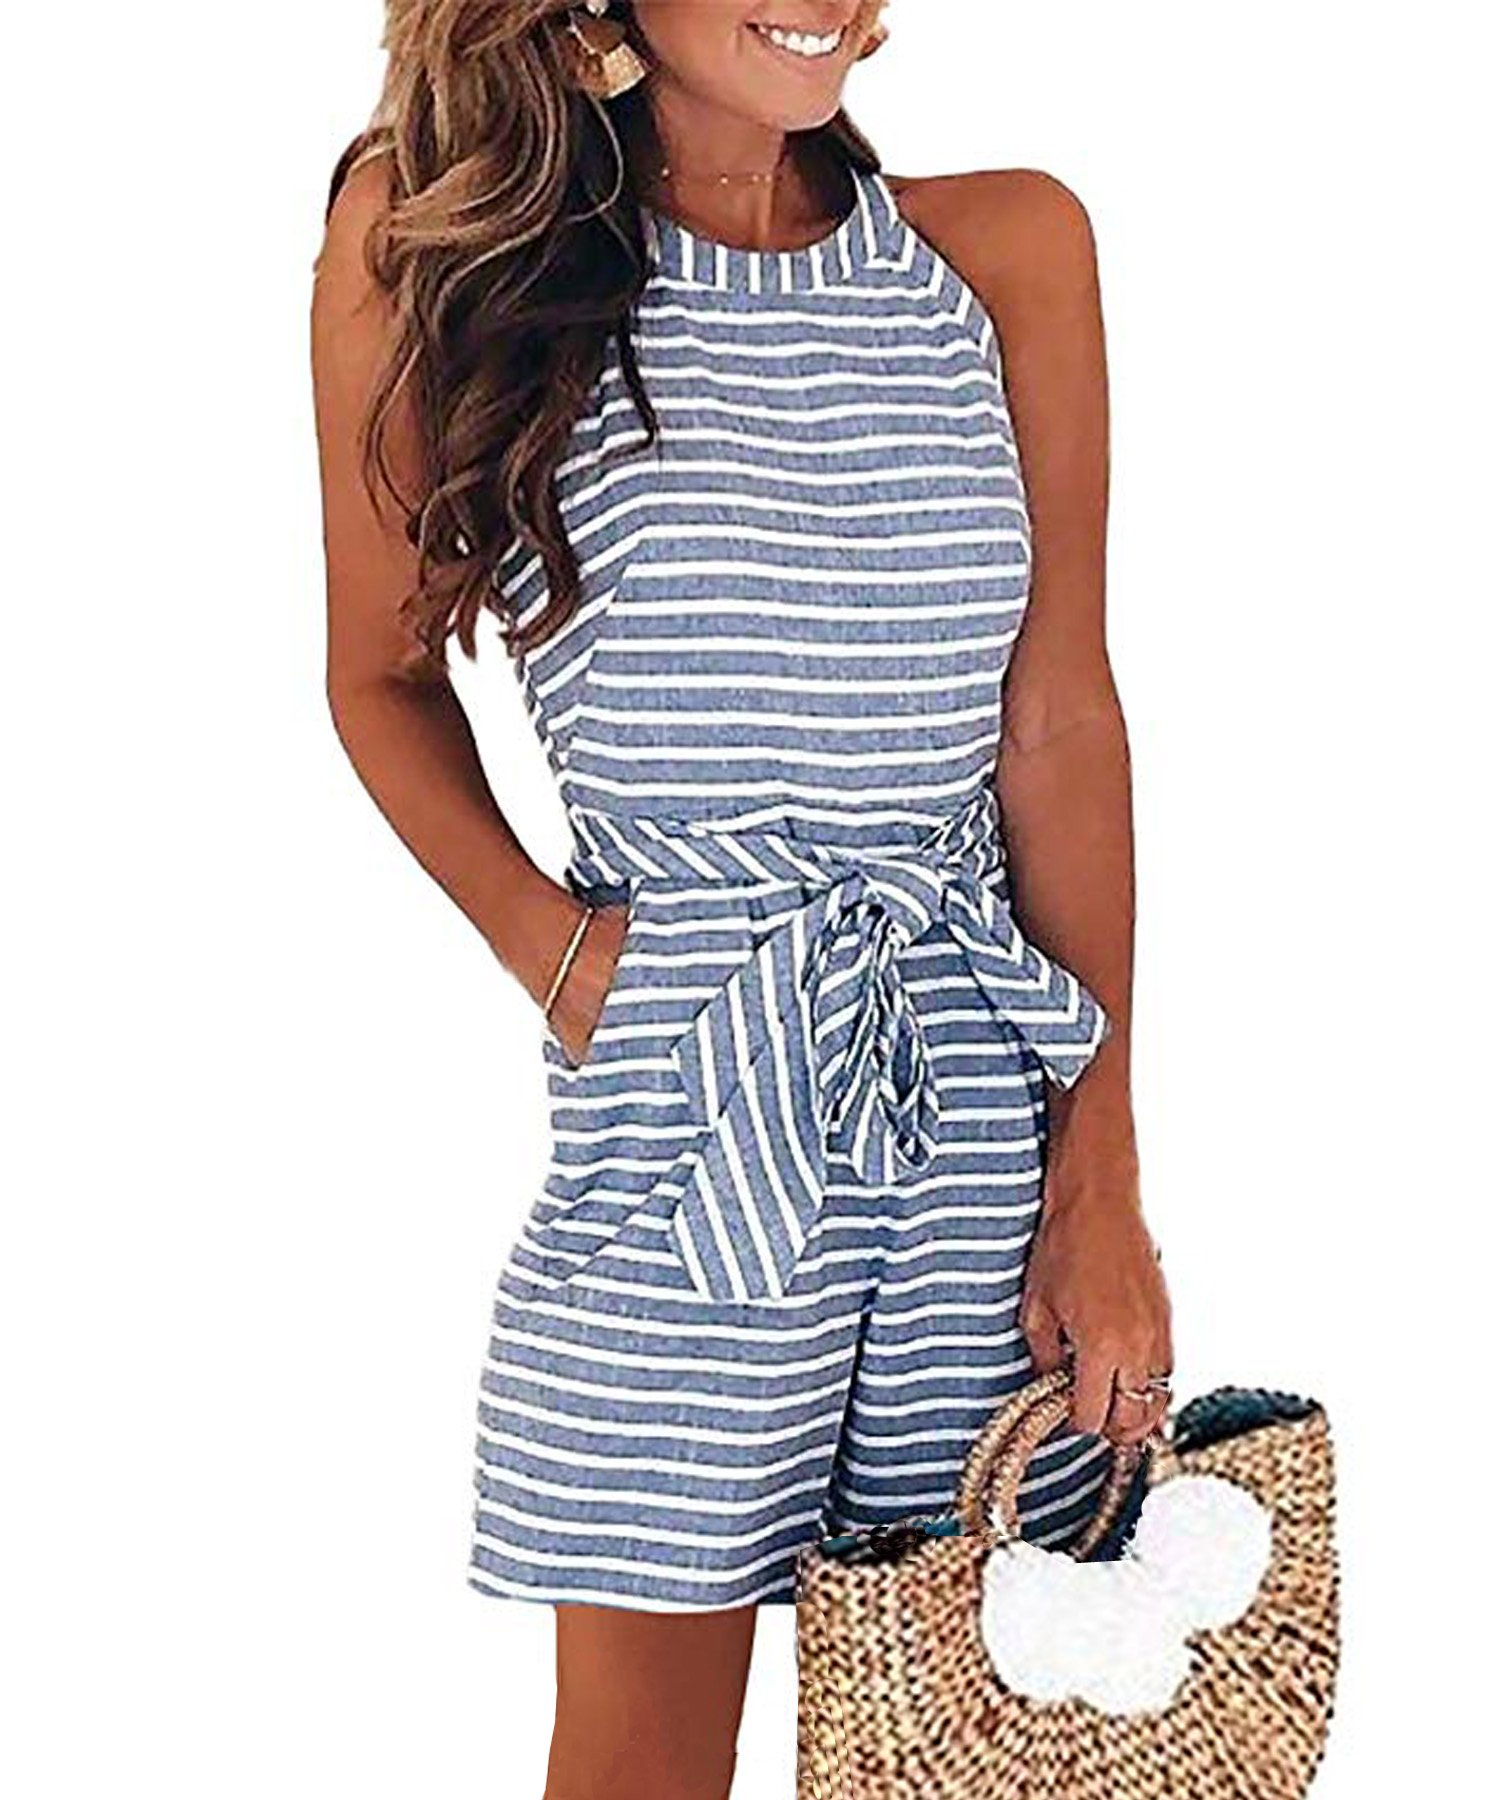 Ru Sweet Women Striped Waist Belted Zipper Back Short Jumpsuit Rompers with Pockets